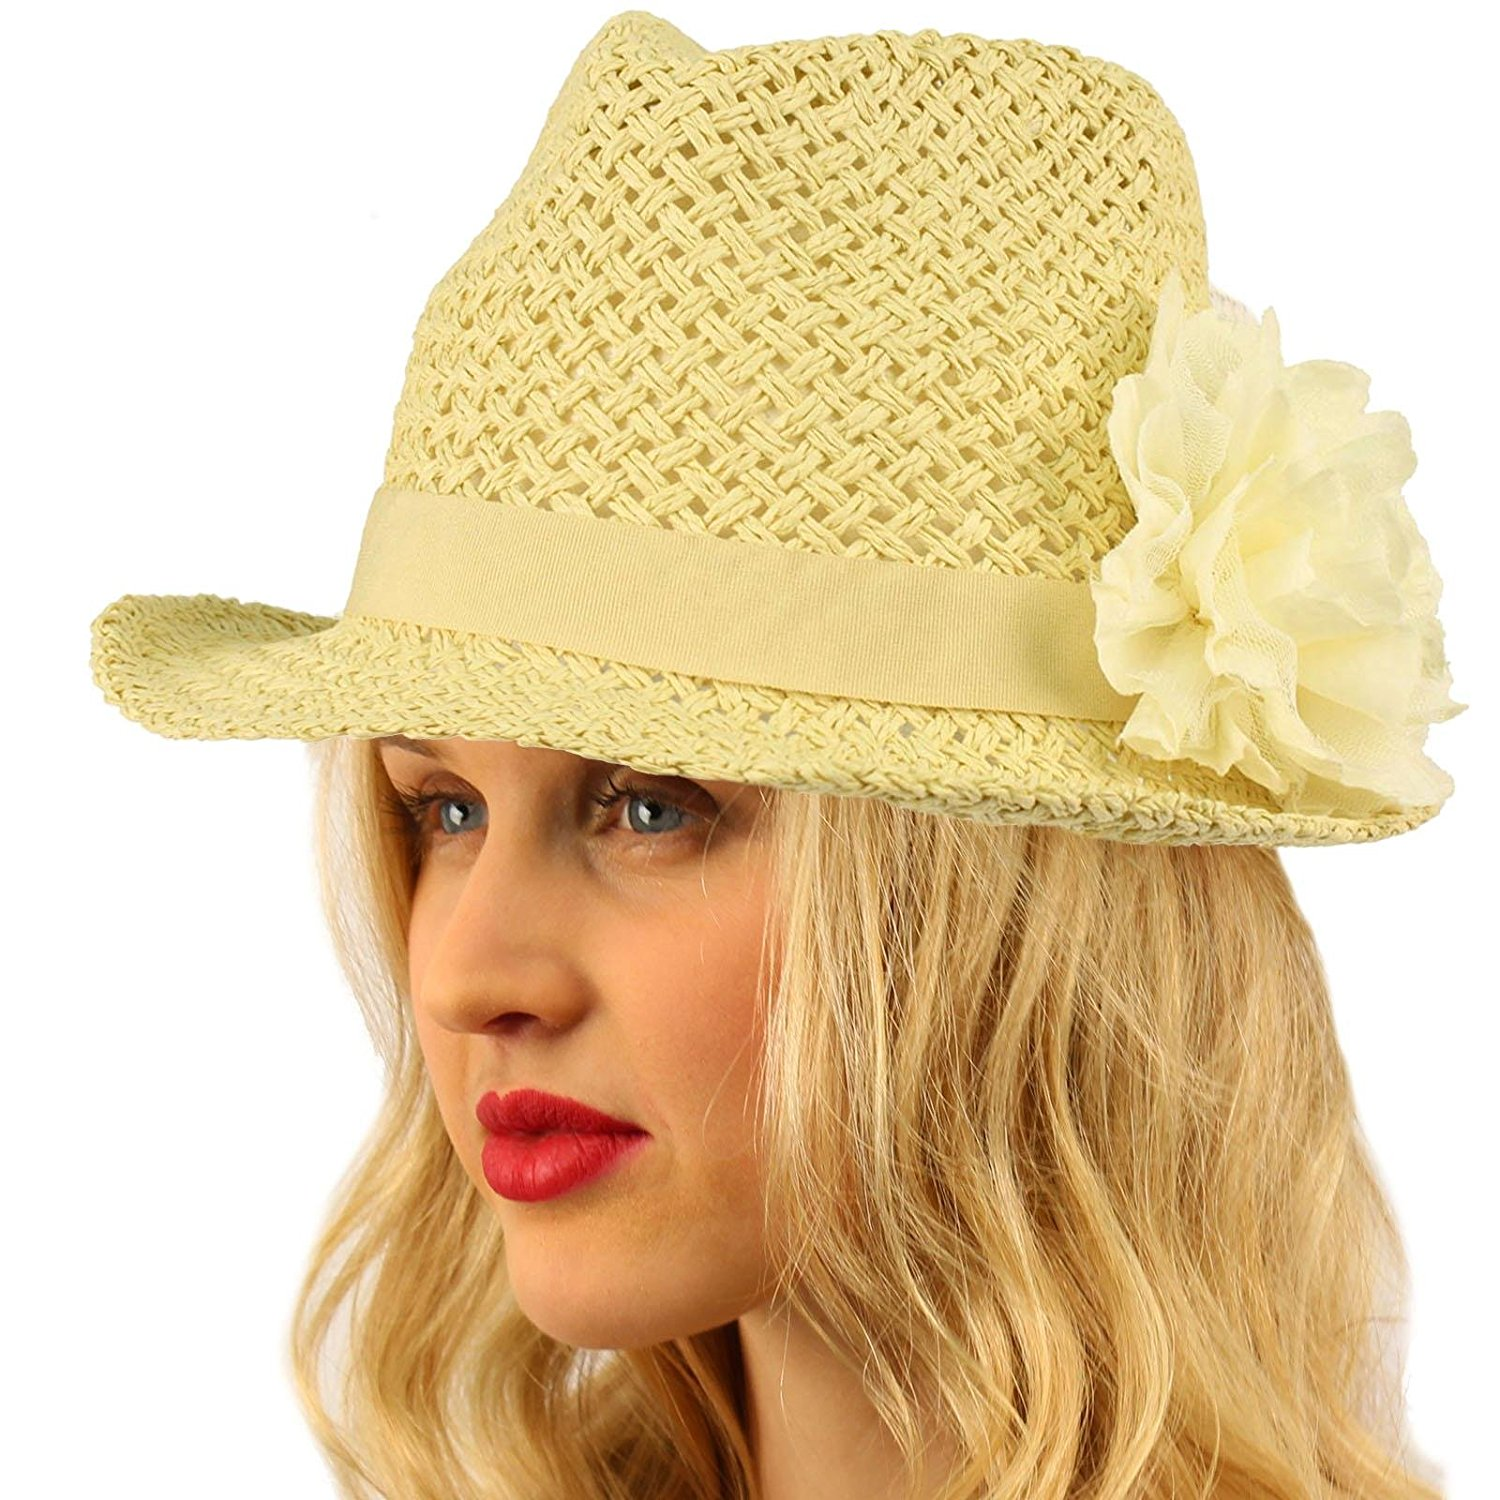 623ce157db9b5 Get Quotations · SK Hat shop Ladies Summer Light Weight Lace Flower Sun  Crushable Fedora Trilby Hat